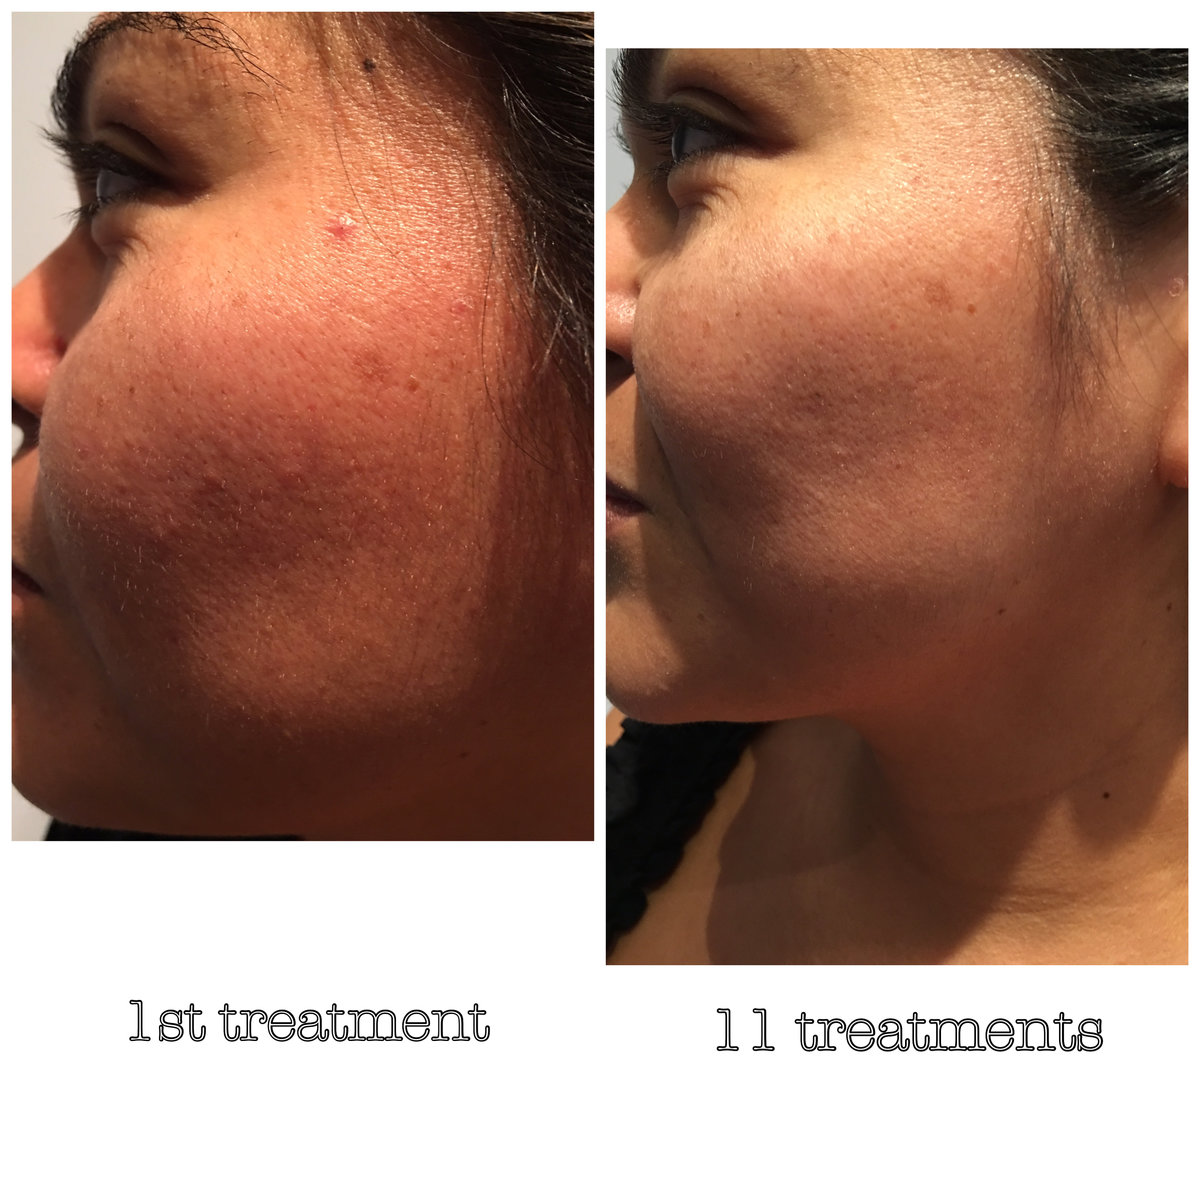 Westlake Body Contouring: Light Therapy for Fat Loss, Healing & So Much More 4